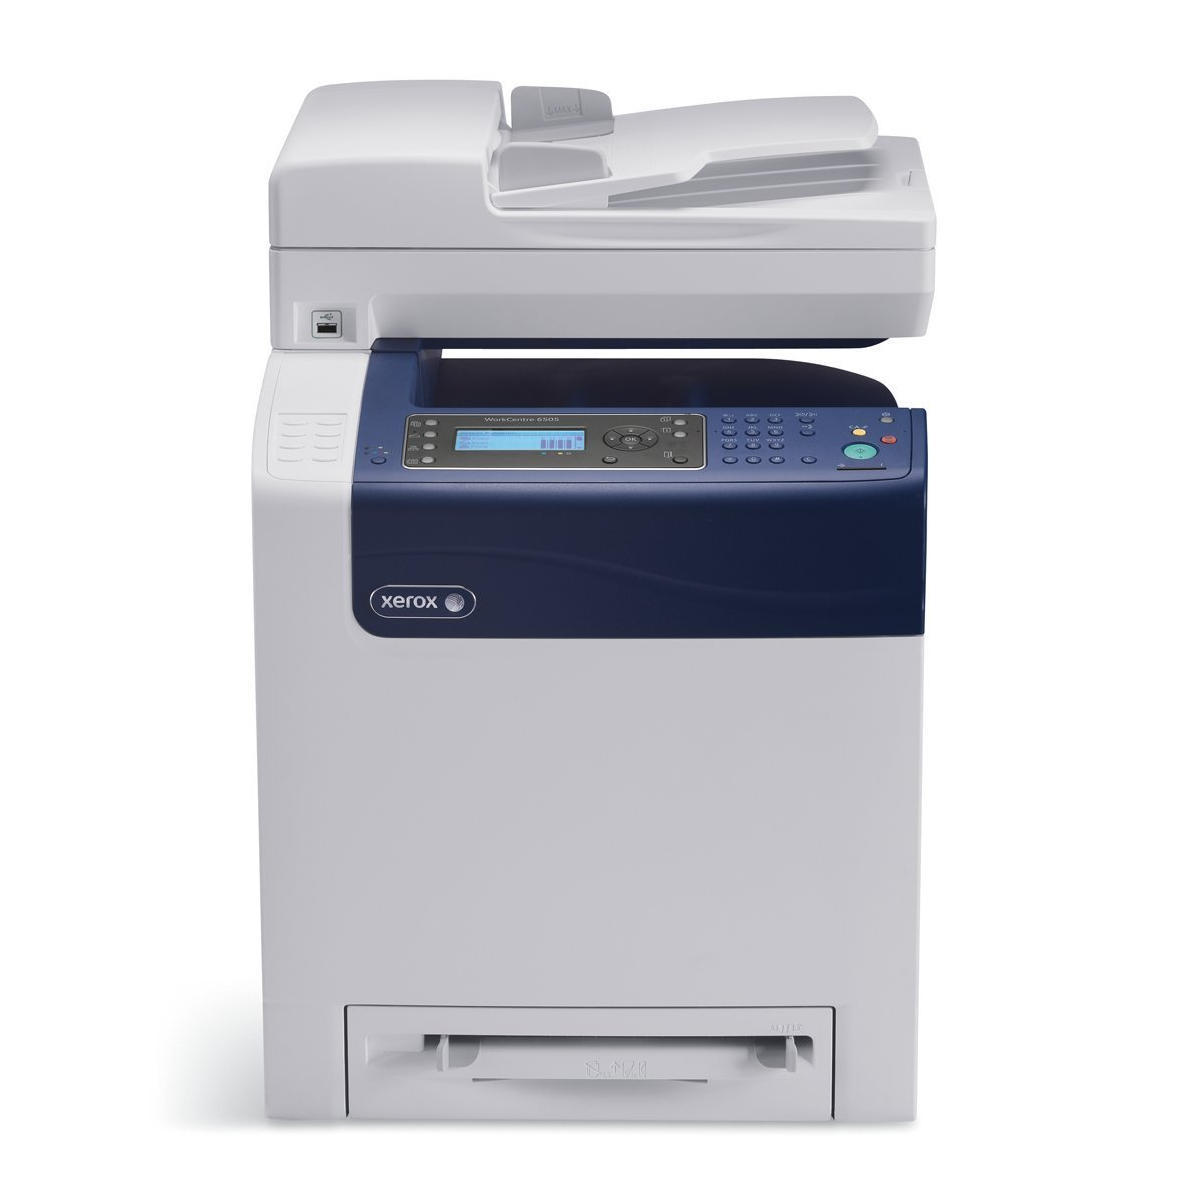 Xerox WorkCentre 6505/DN All-In-One Colour Laser Printer (WorkCentre 6505)